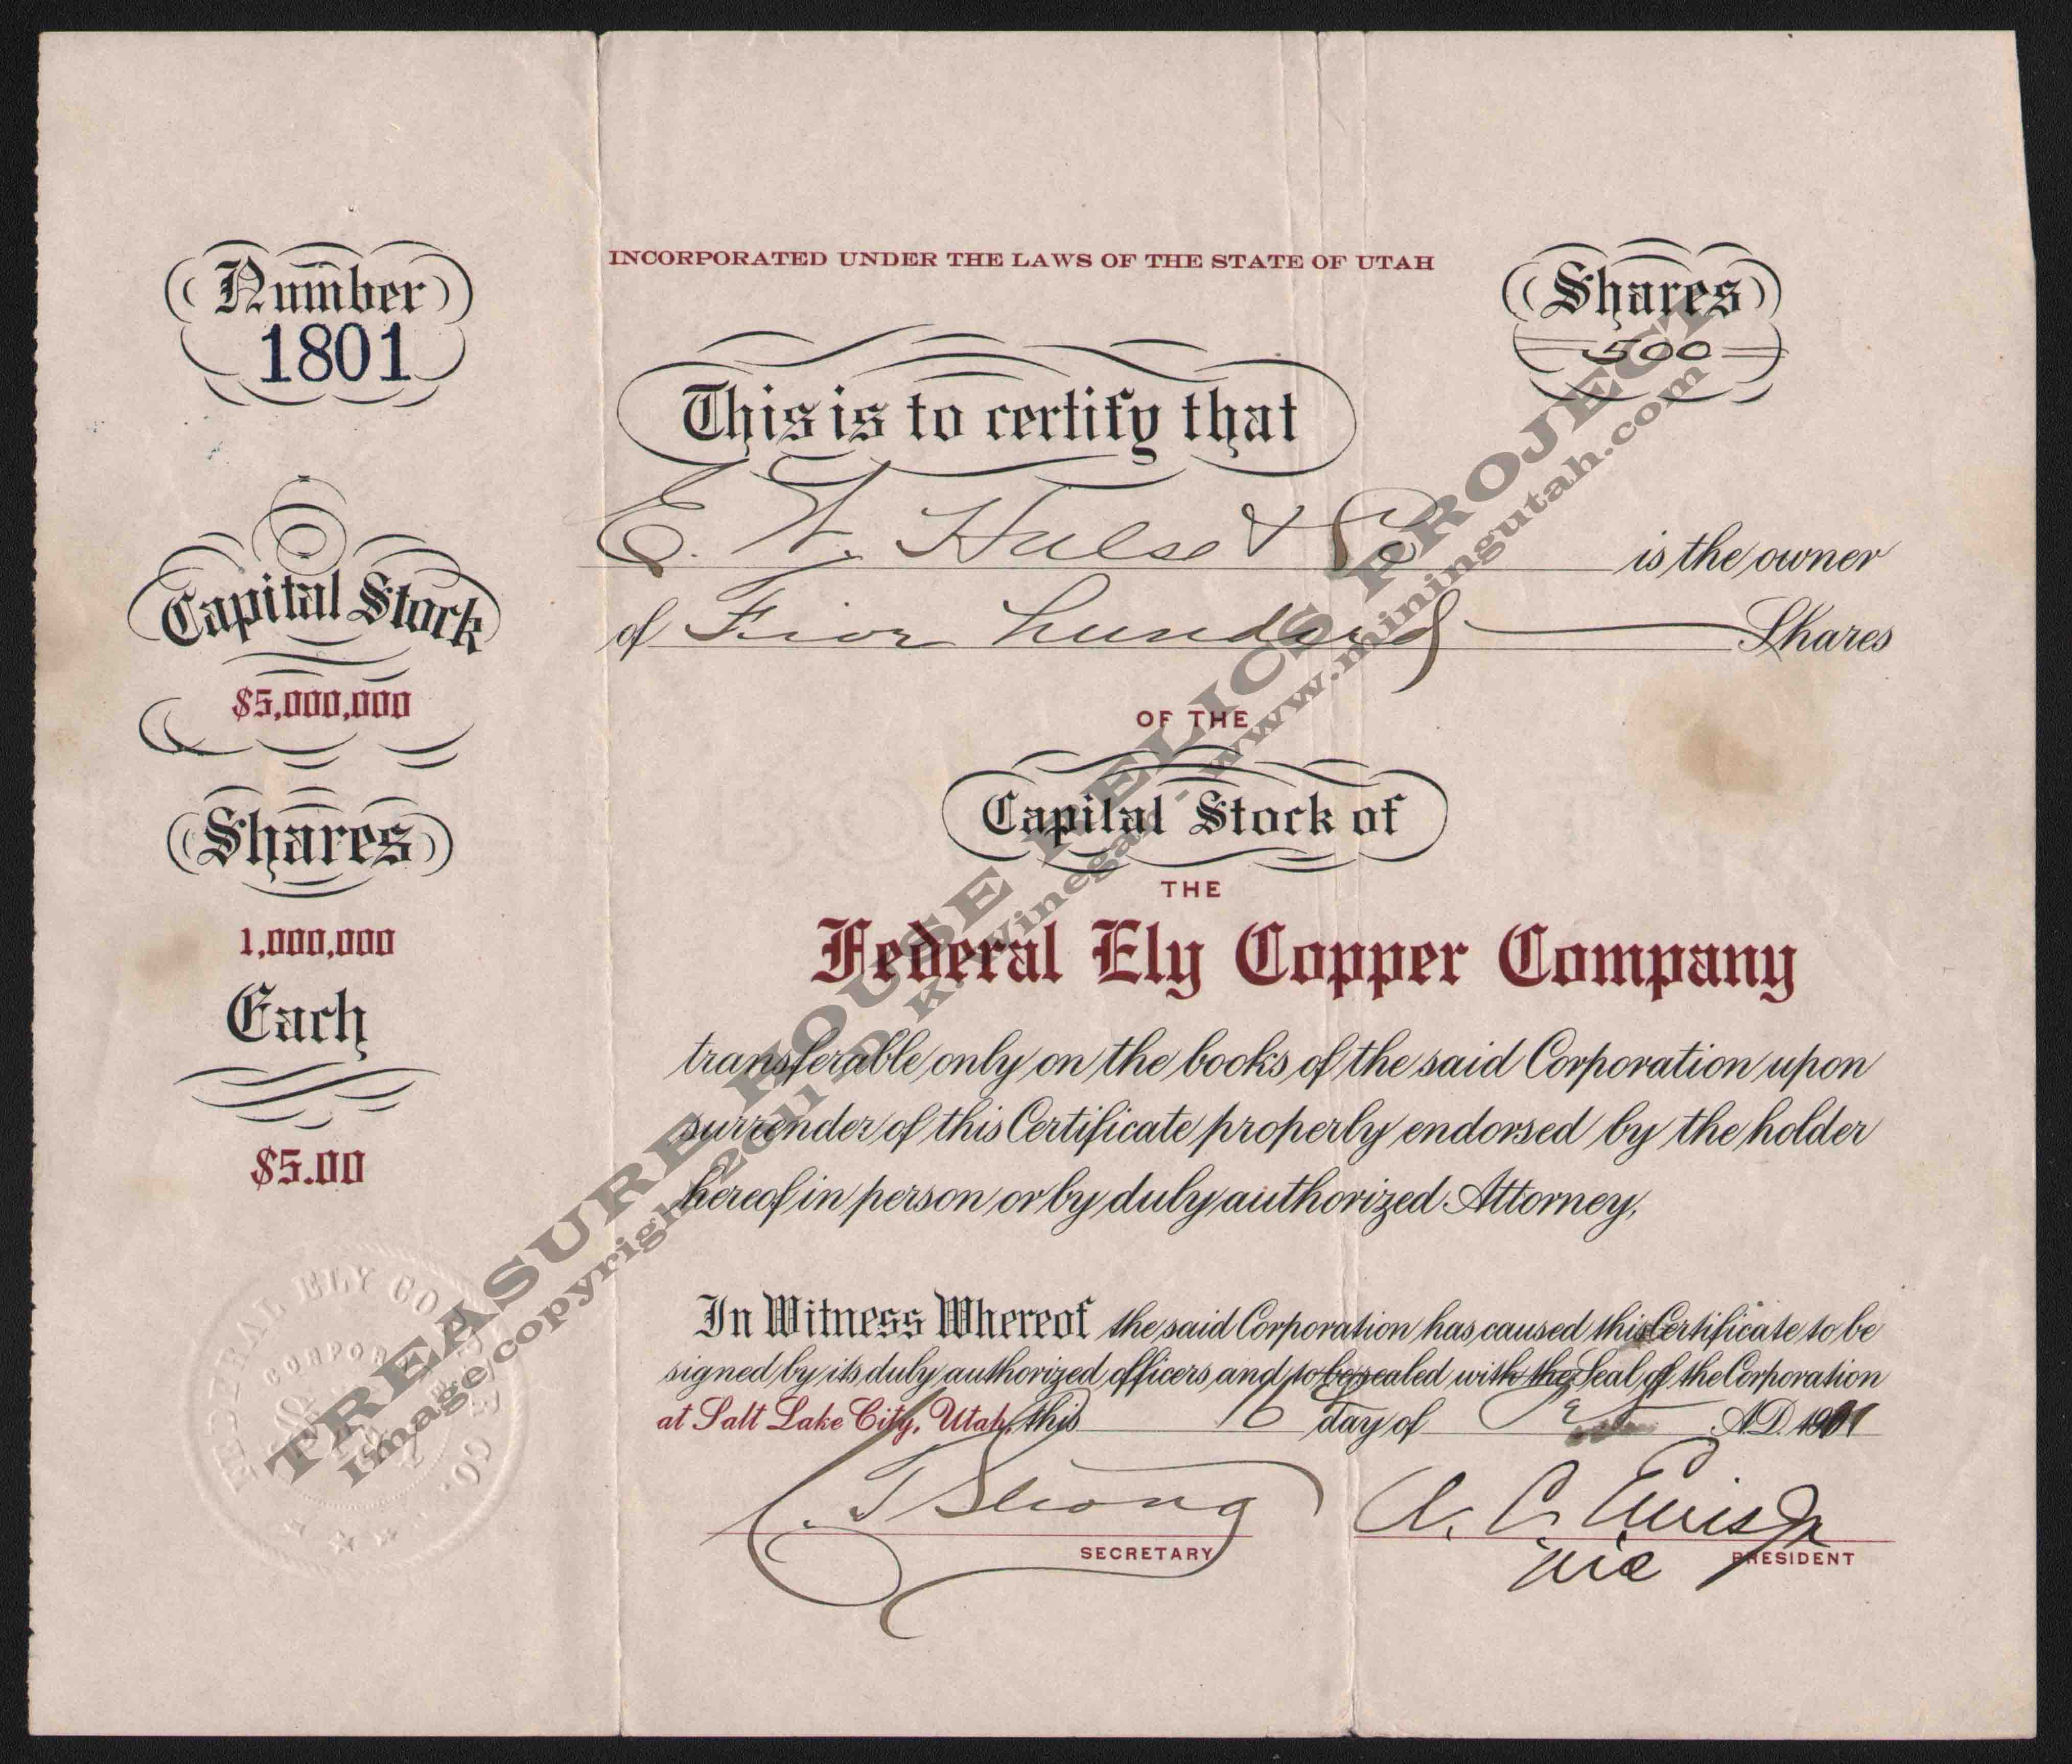 FEDERAL_ELY_COPPER_COMPANY_1801_400_emboss.jpg